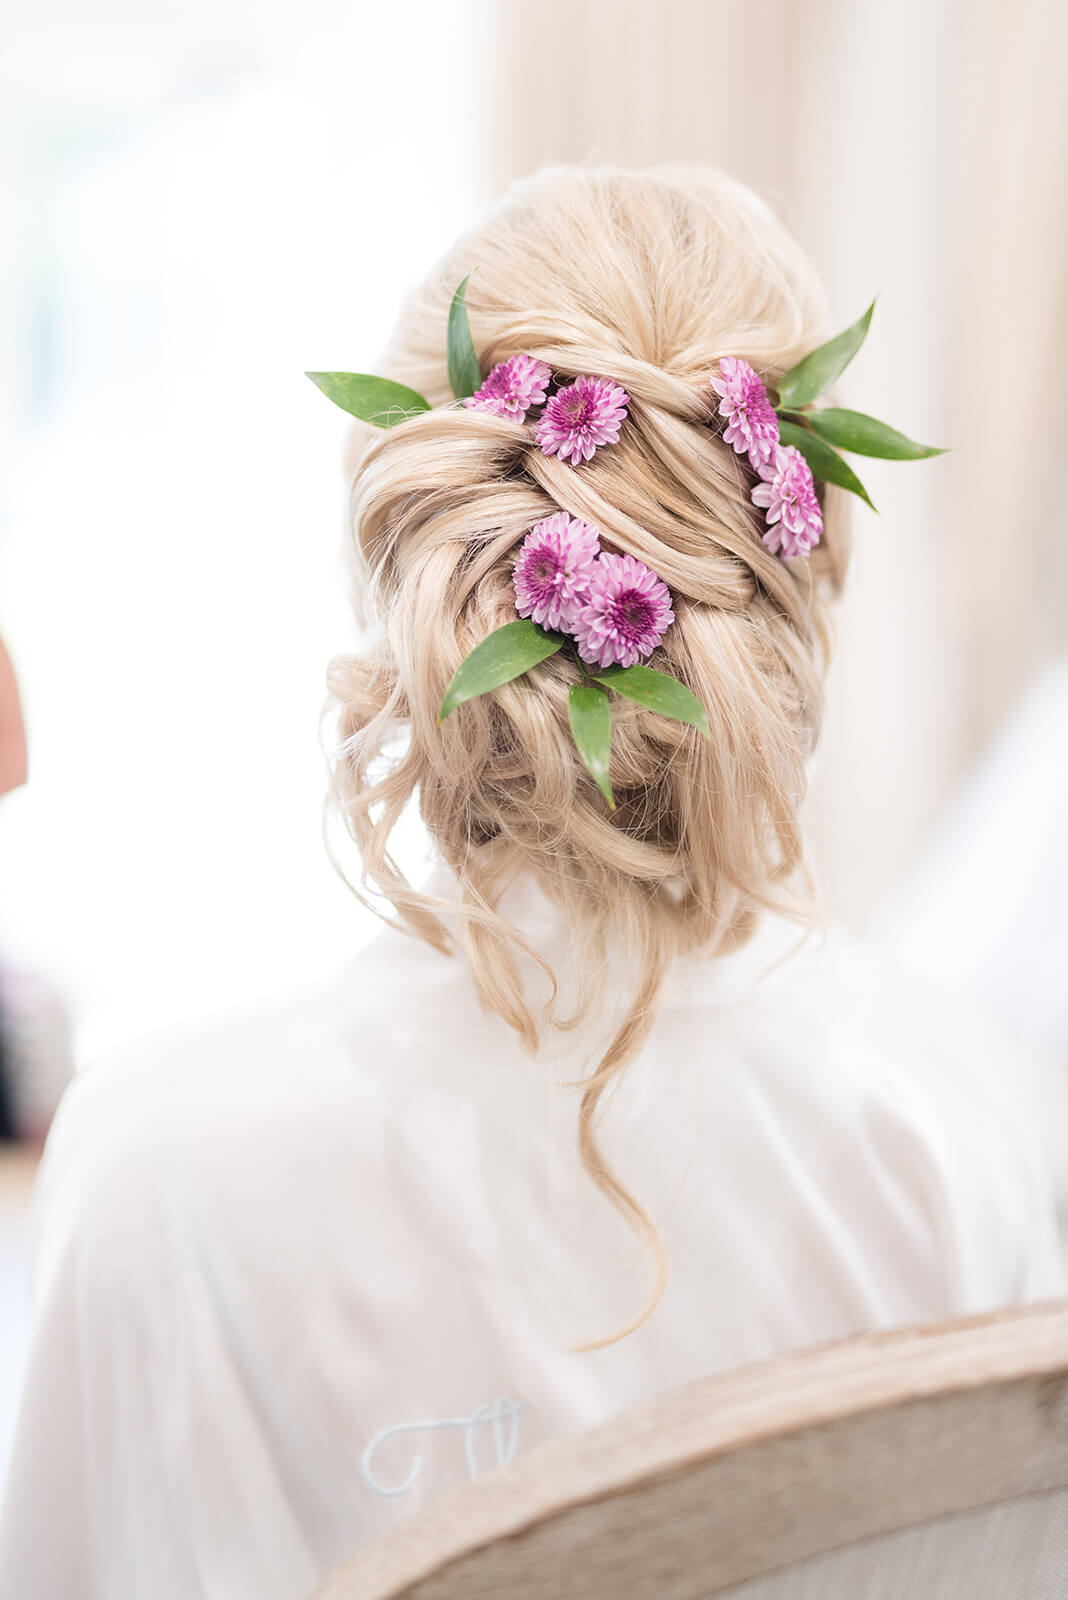 bridal whimsical hair updo with purple flowers